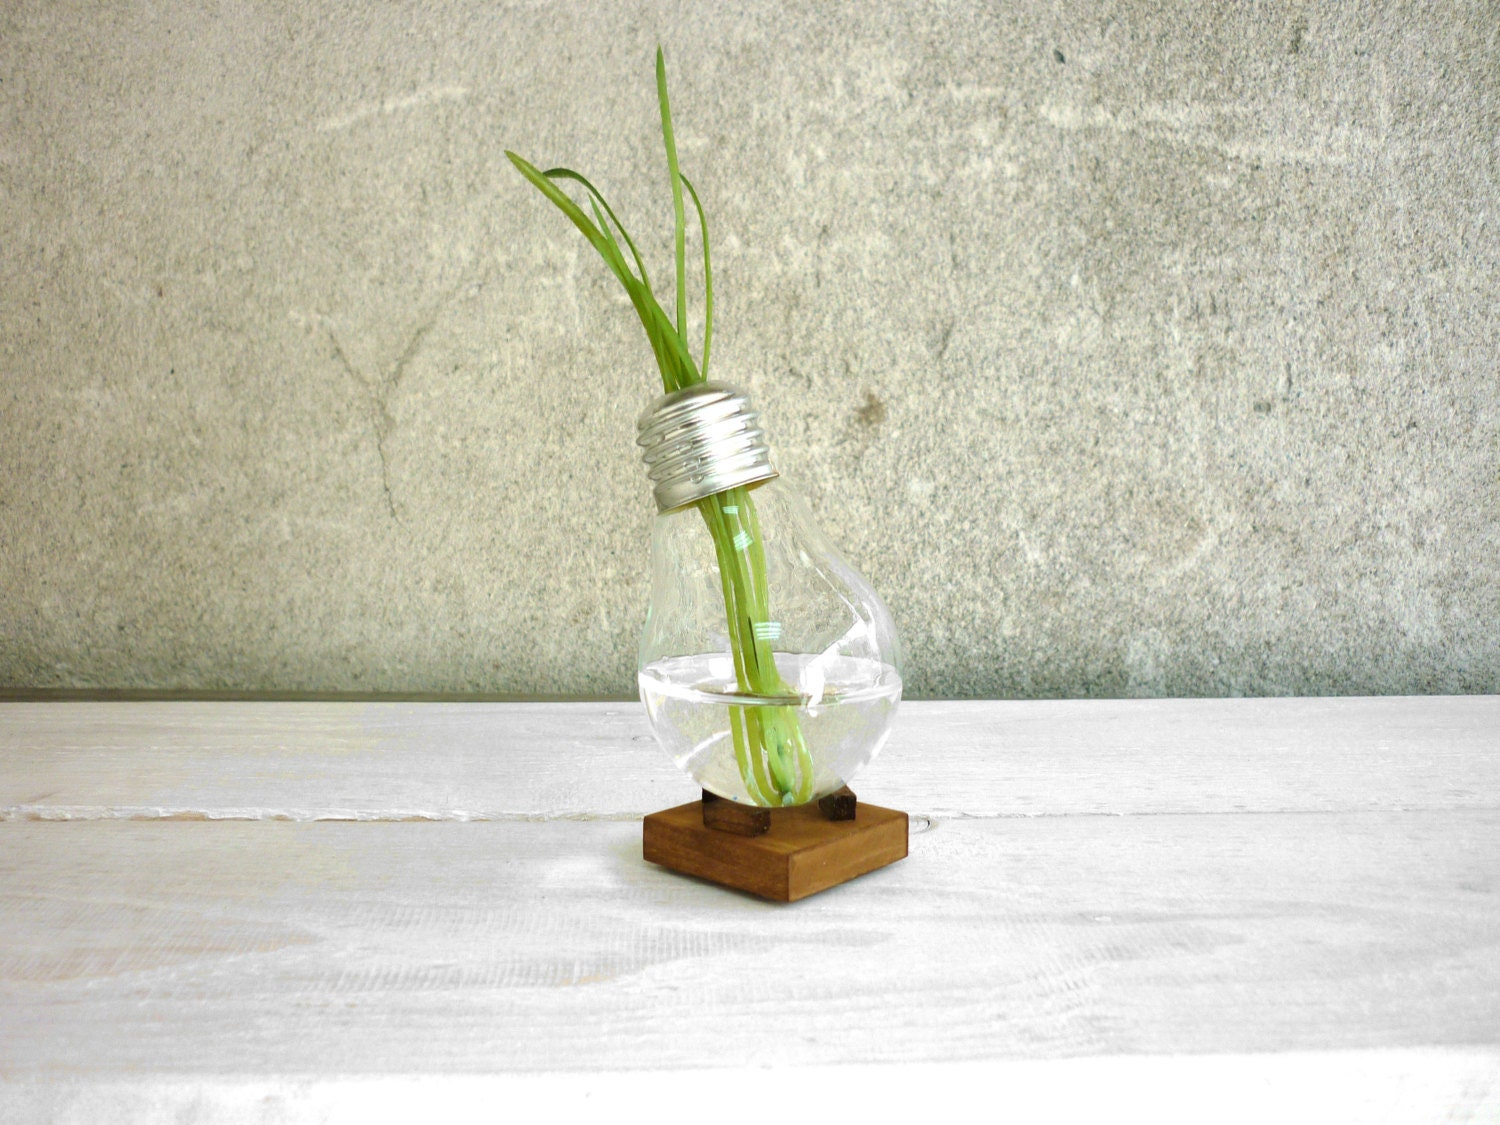 bud vase alpha glass vase miniature vase plant. Black Bedroom Furniture Sets. Home Design Ideas